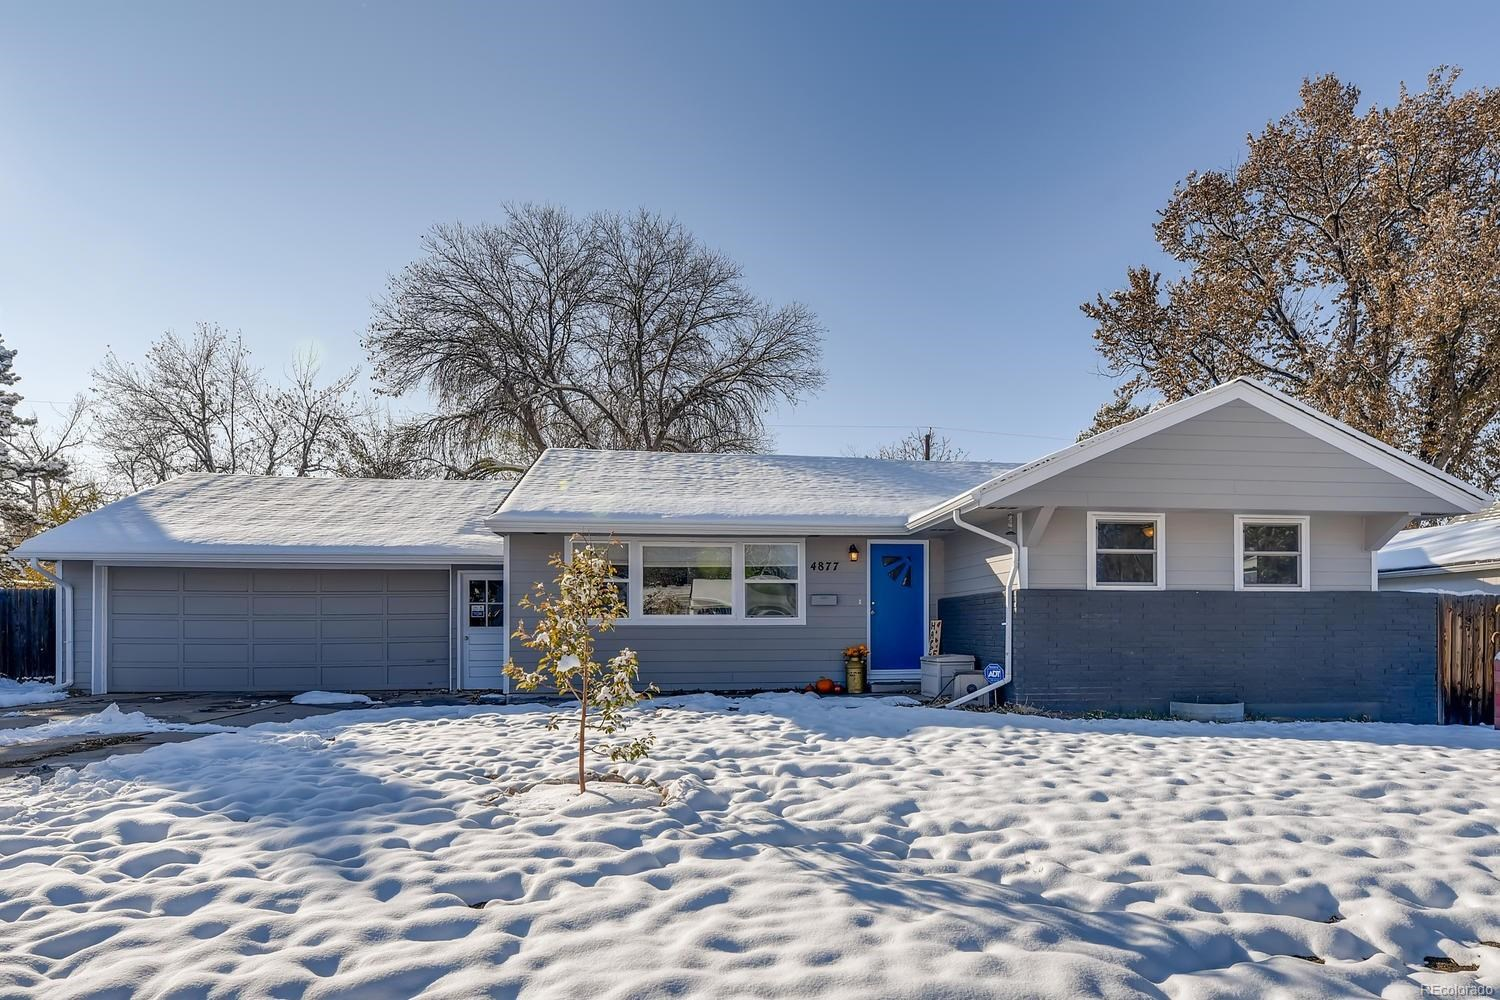 MLS# 2202878 - 1 - 4877 S Delaware Street, Englewood, CO 80110